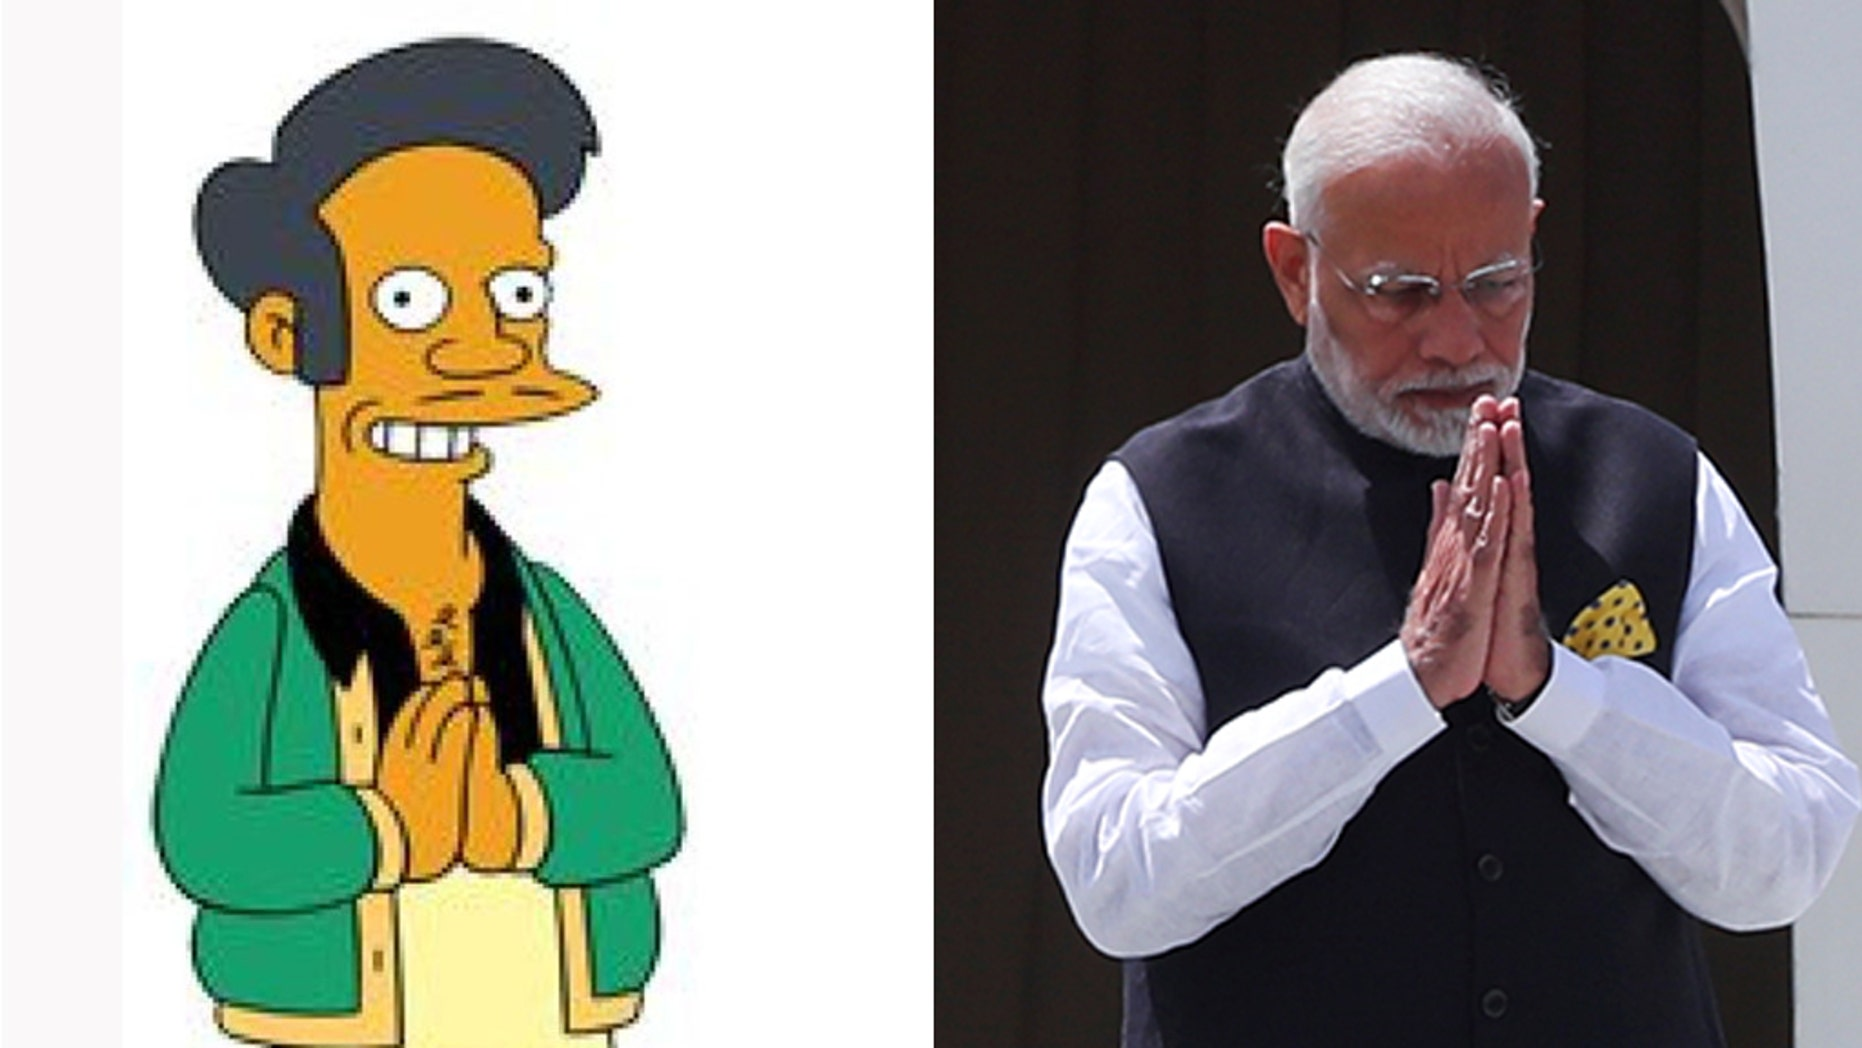 'Apu arrives': Backlash over introduction of India's Modi at G20 summit